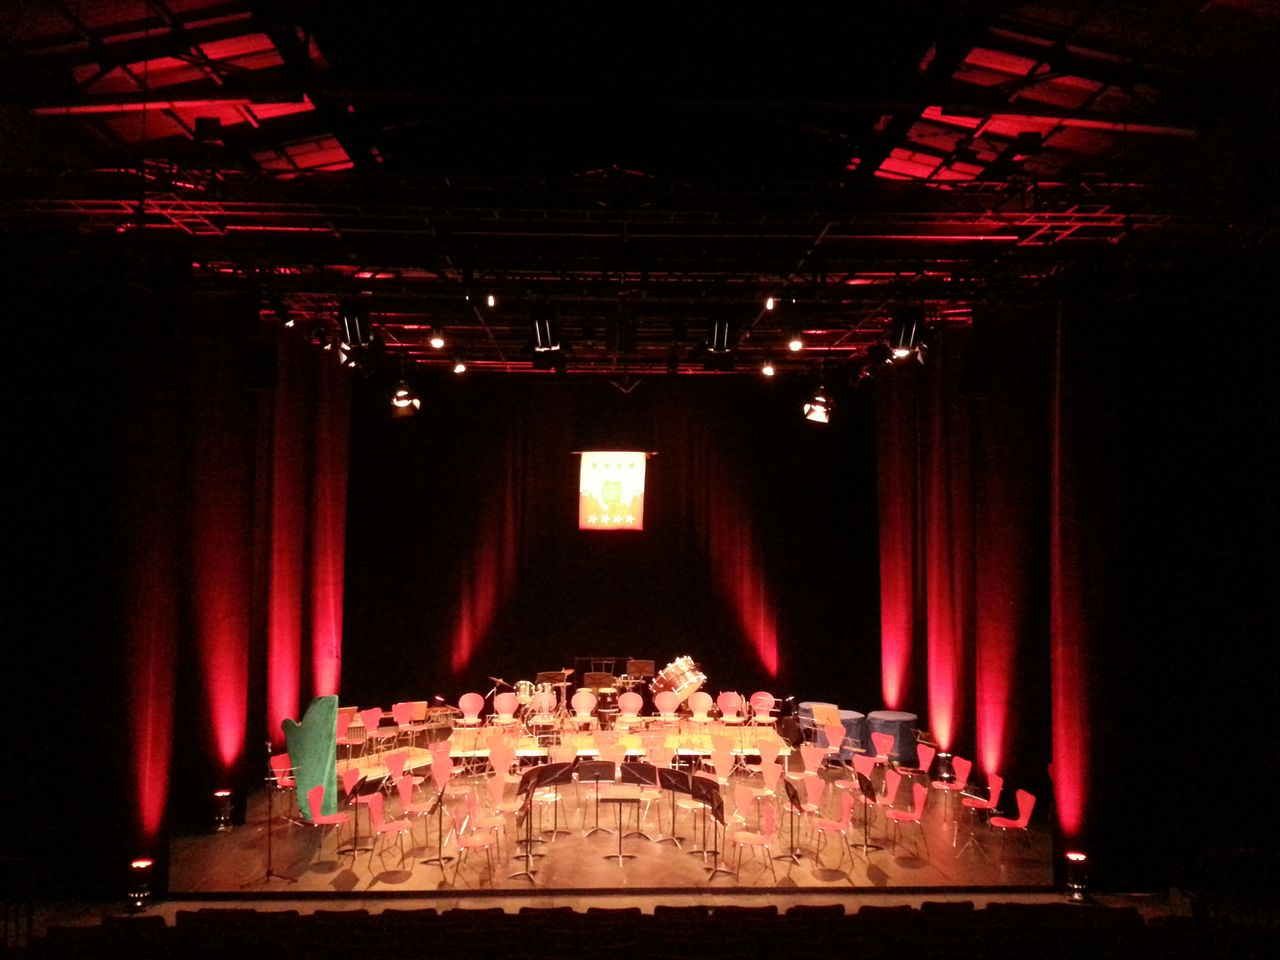 spectacle nocturnologie (10)